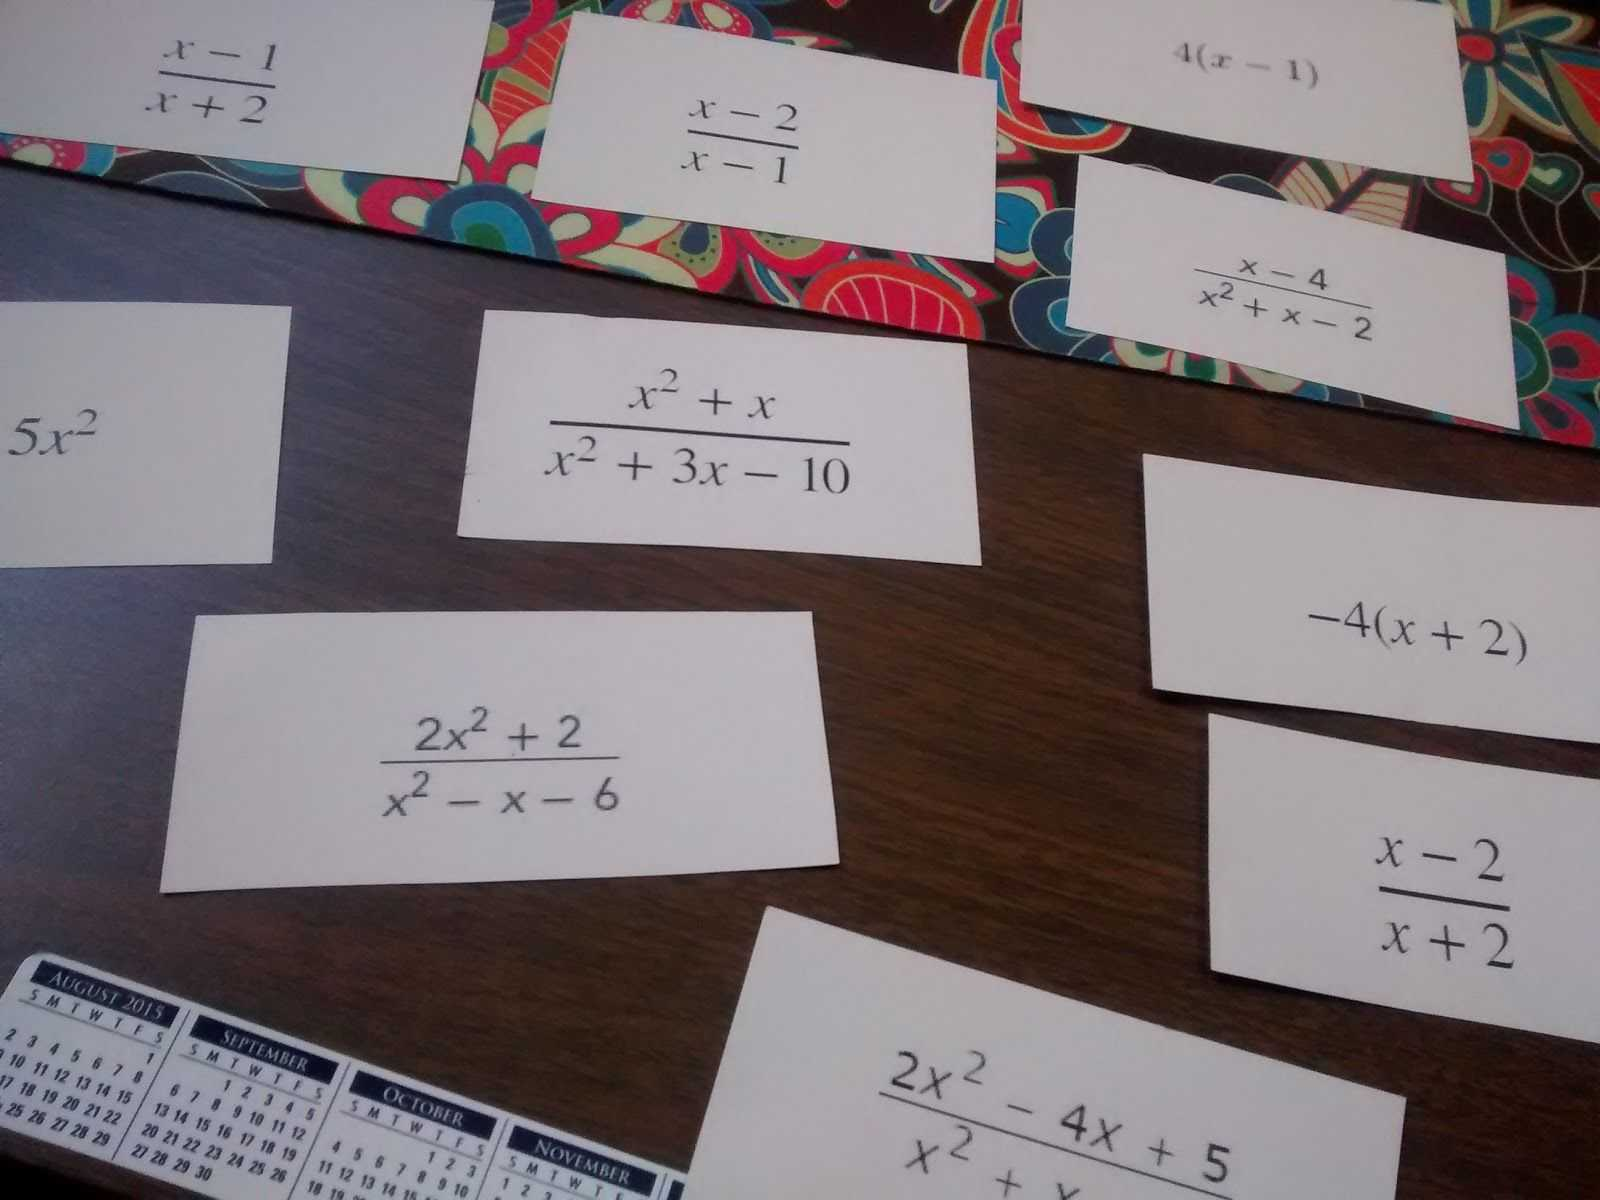 Multiplying Rational Expressions Worksheet Algebra 2 as Well as Math = Love Rational Expressions Question Stack